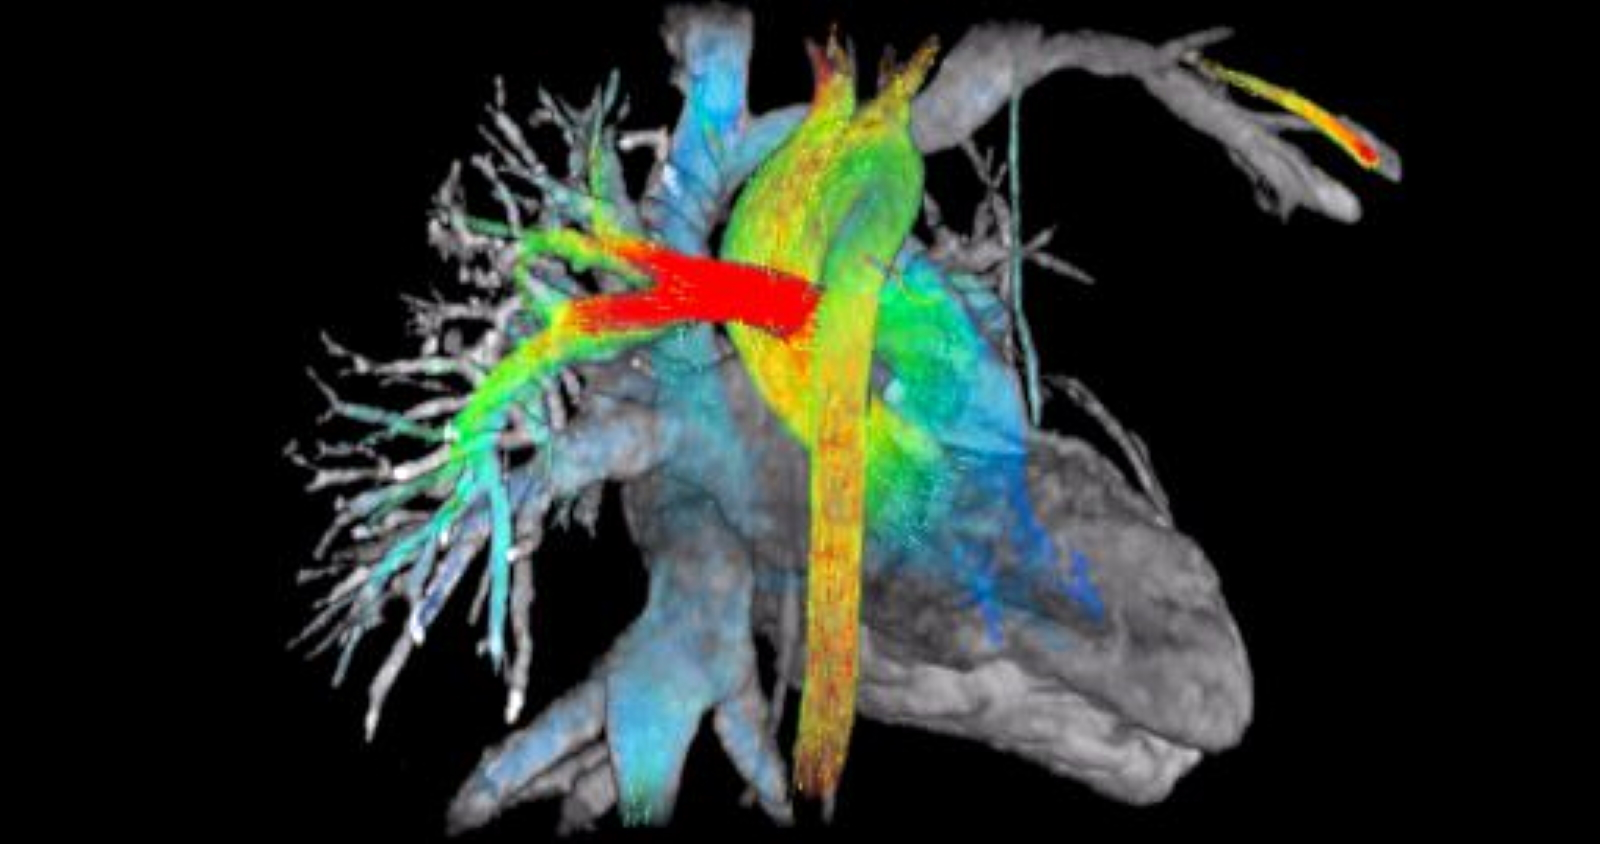 Magnetic resonance imaging can show images of the heart and blood flow.